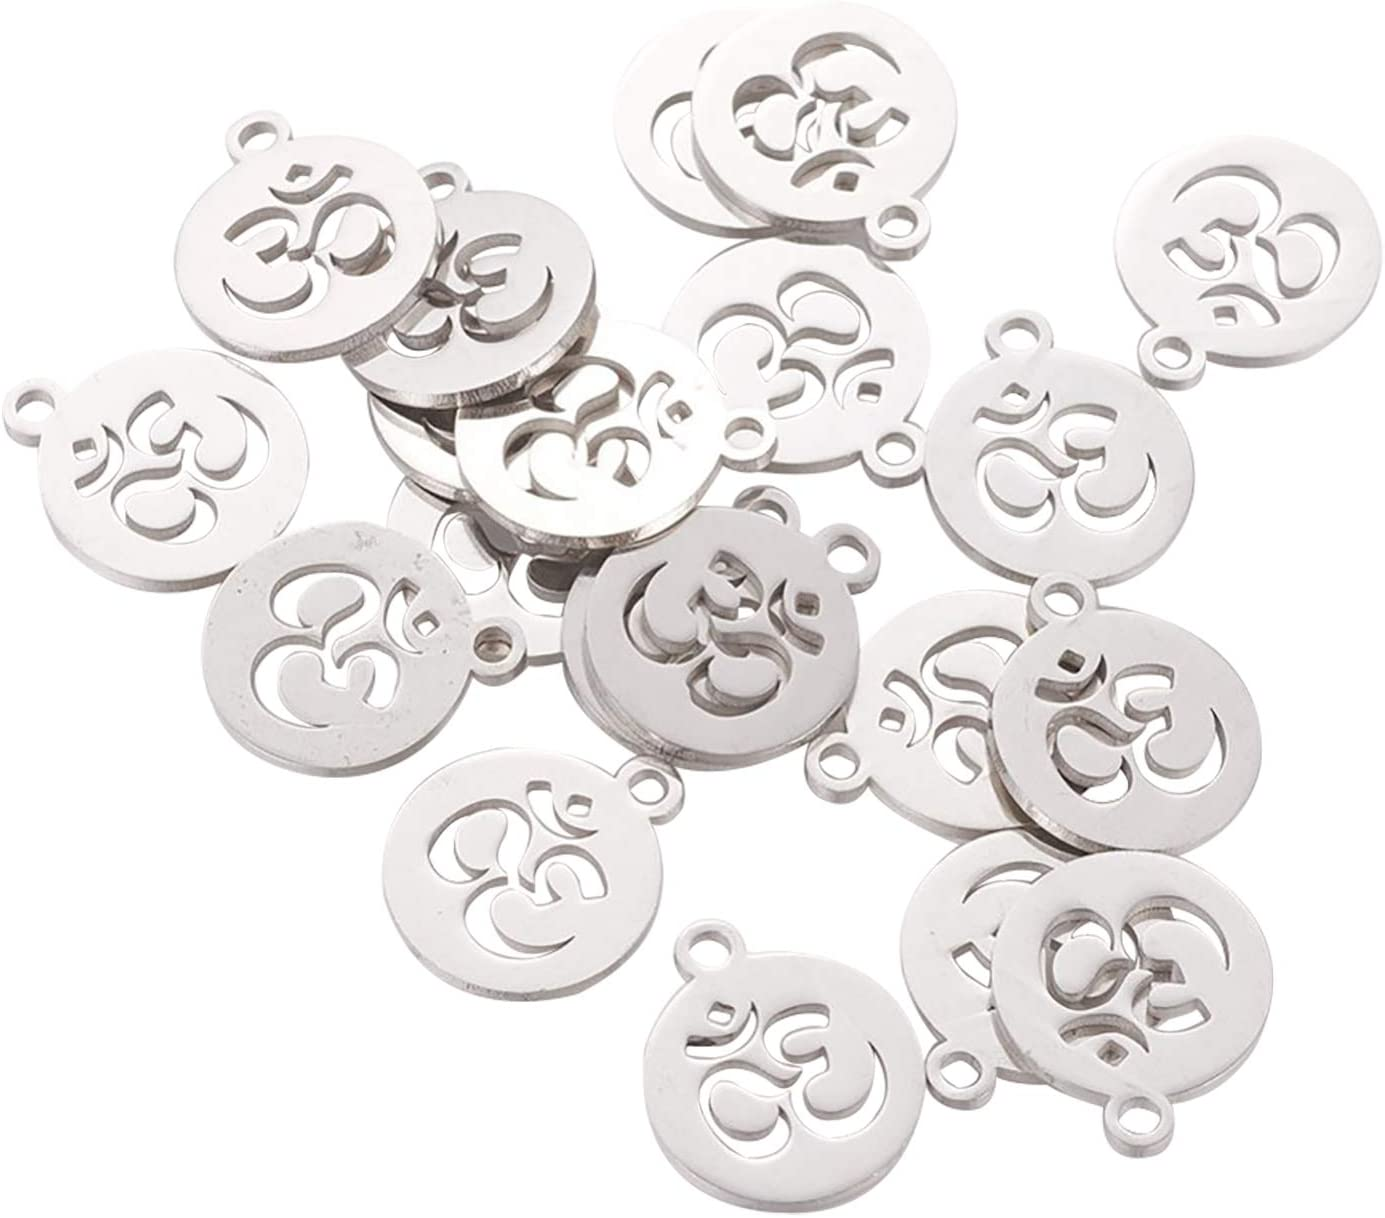 UR URLIFEHALL 20 pcs 304 Stainless Steel Flat Round with Ohm Charms Pendent for Necklack DIY Making